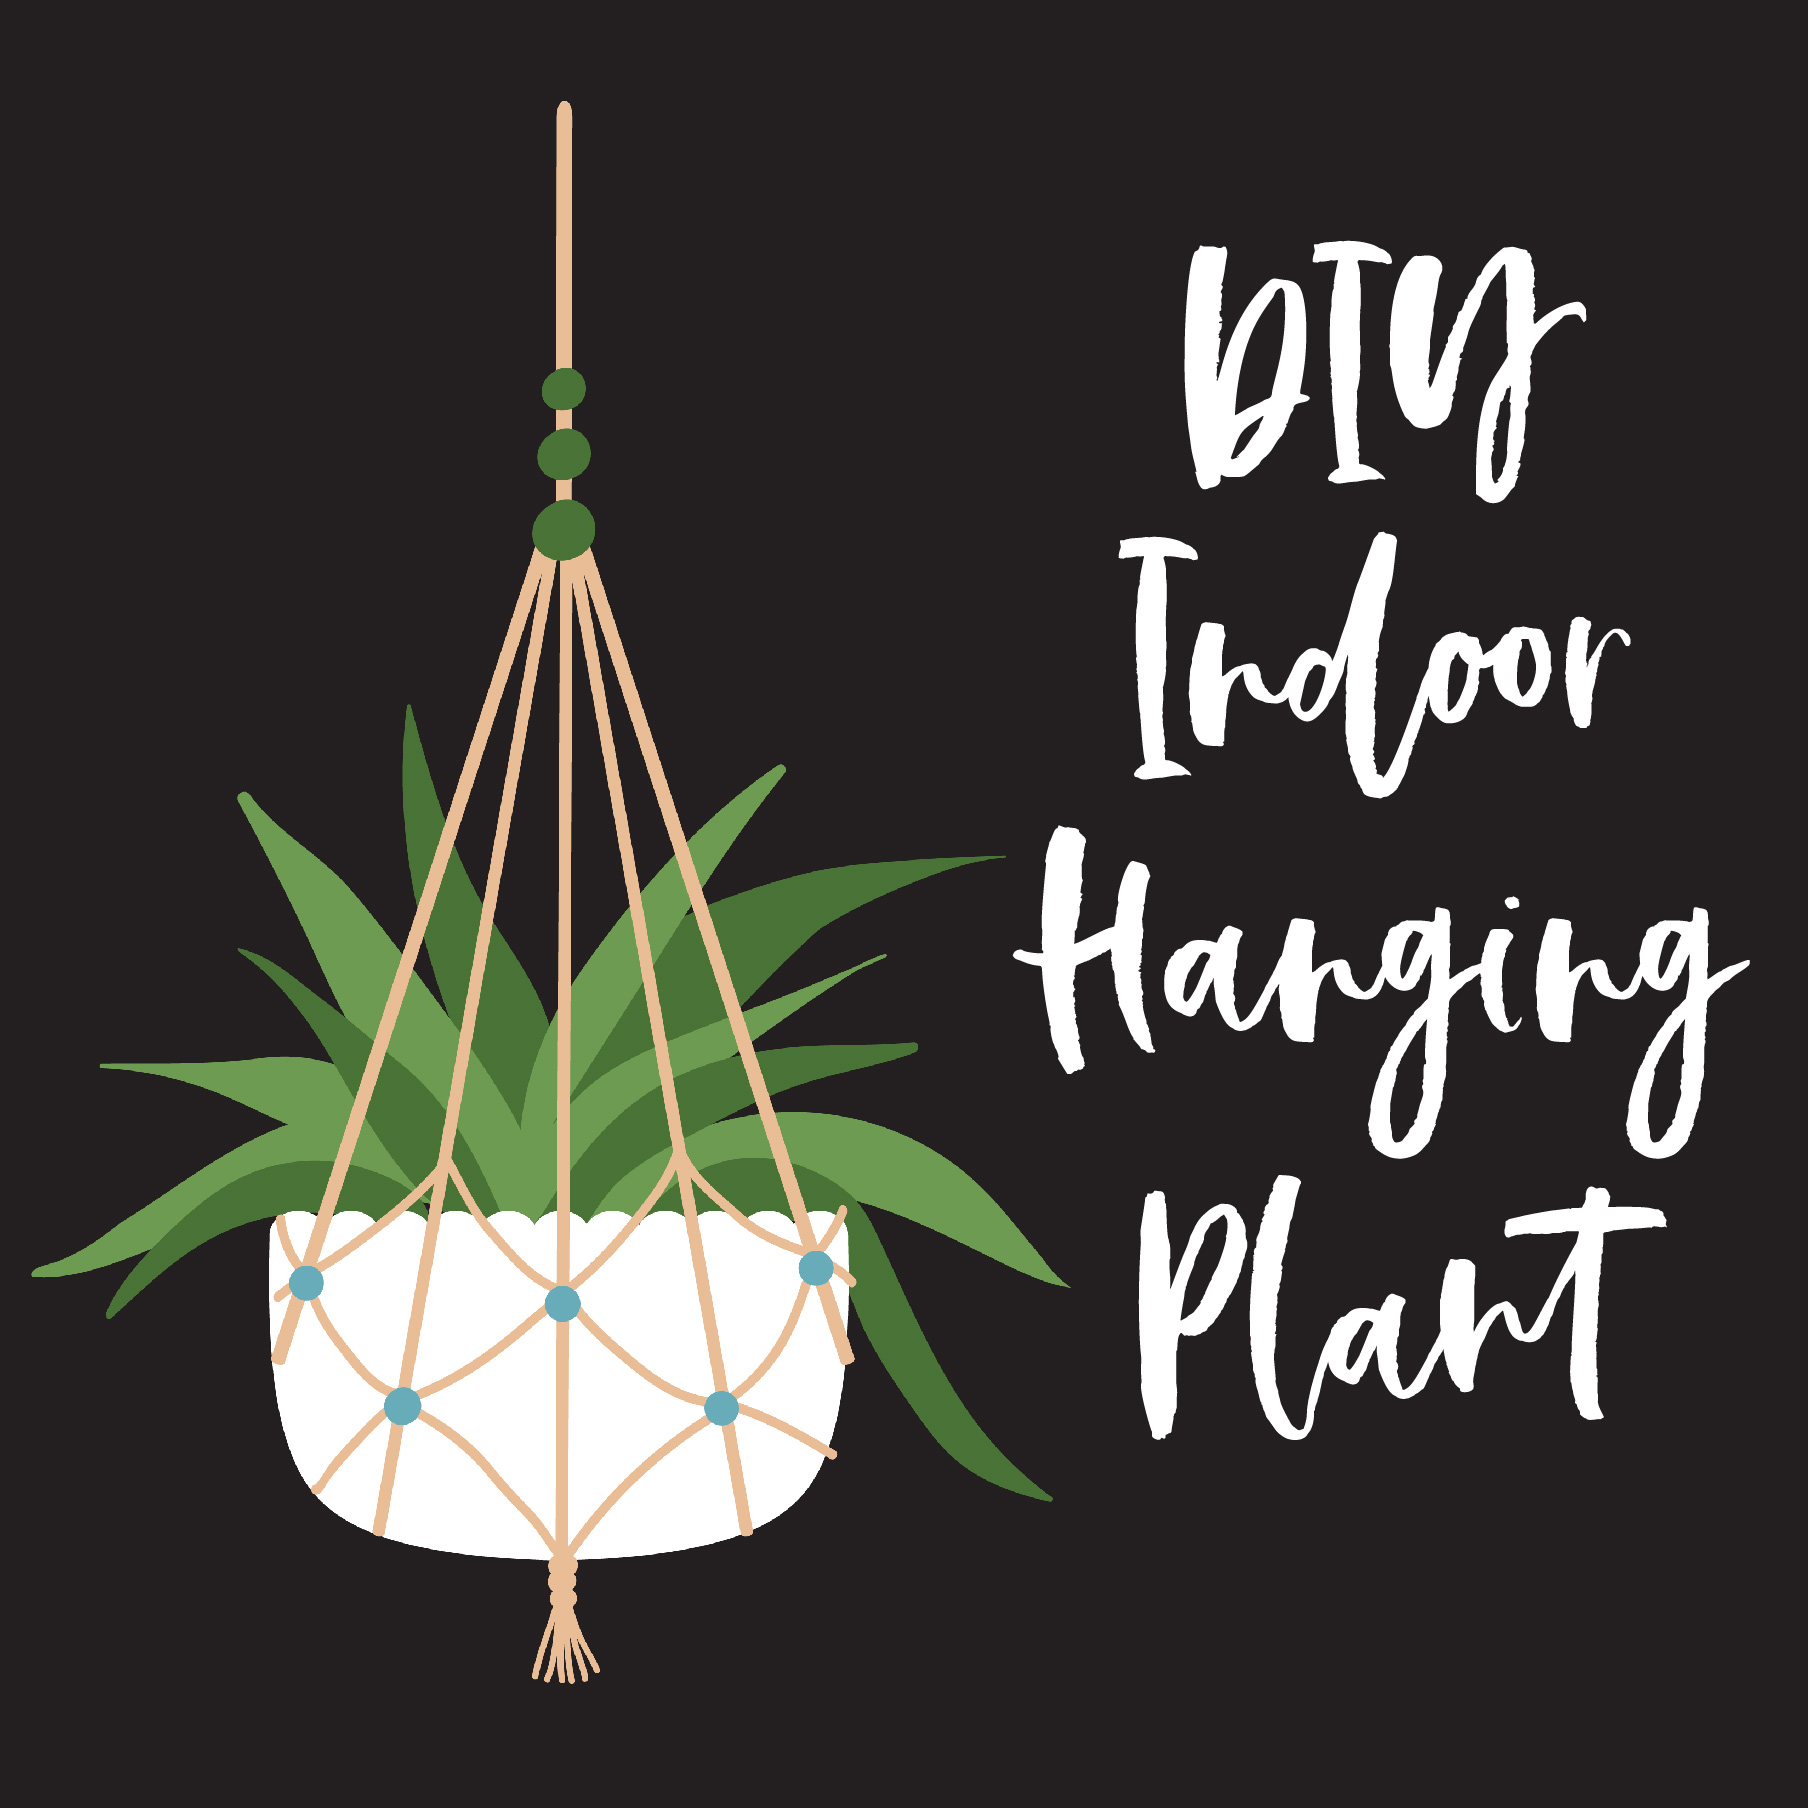 20 Minute DIY Classroom Hanging Plant | DIY Indoor Hanging Planter